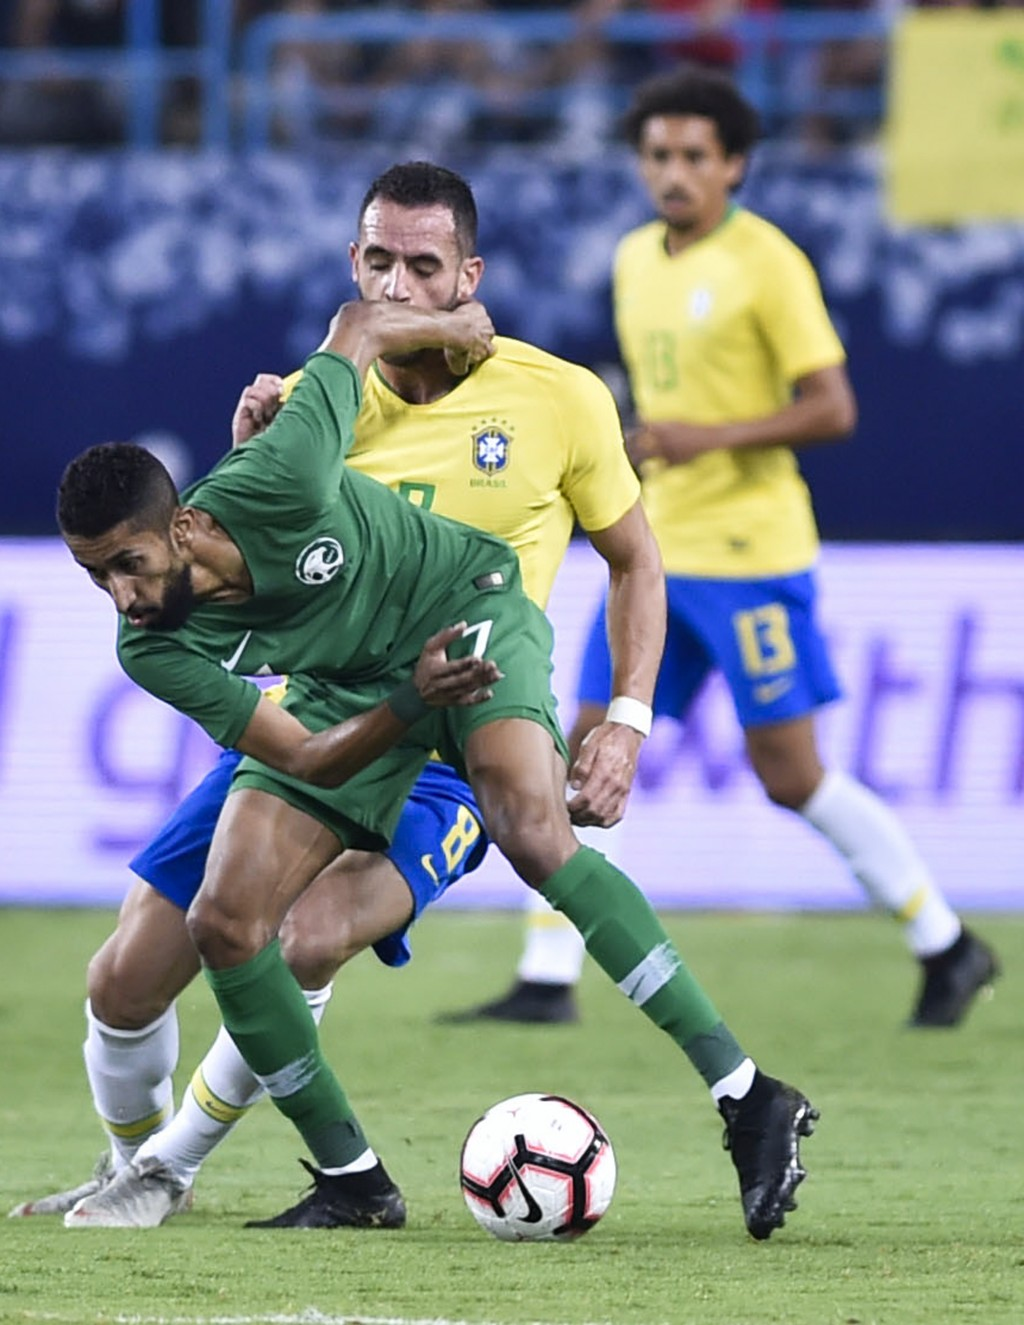 Saudi Arabia's Salman Alfaraj, left, competes for the ball with Brazil's Renato during a friendly soccer match between Brazil and Saudi Arabia at King